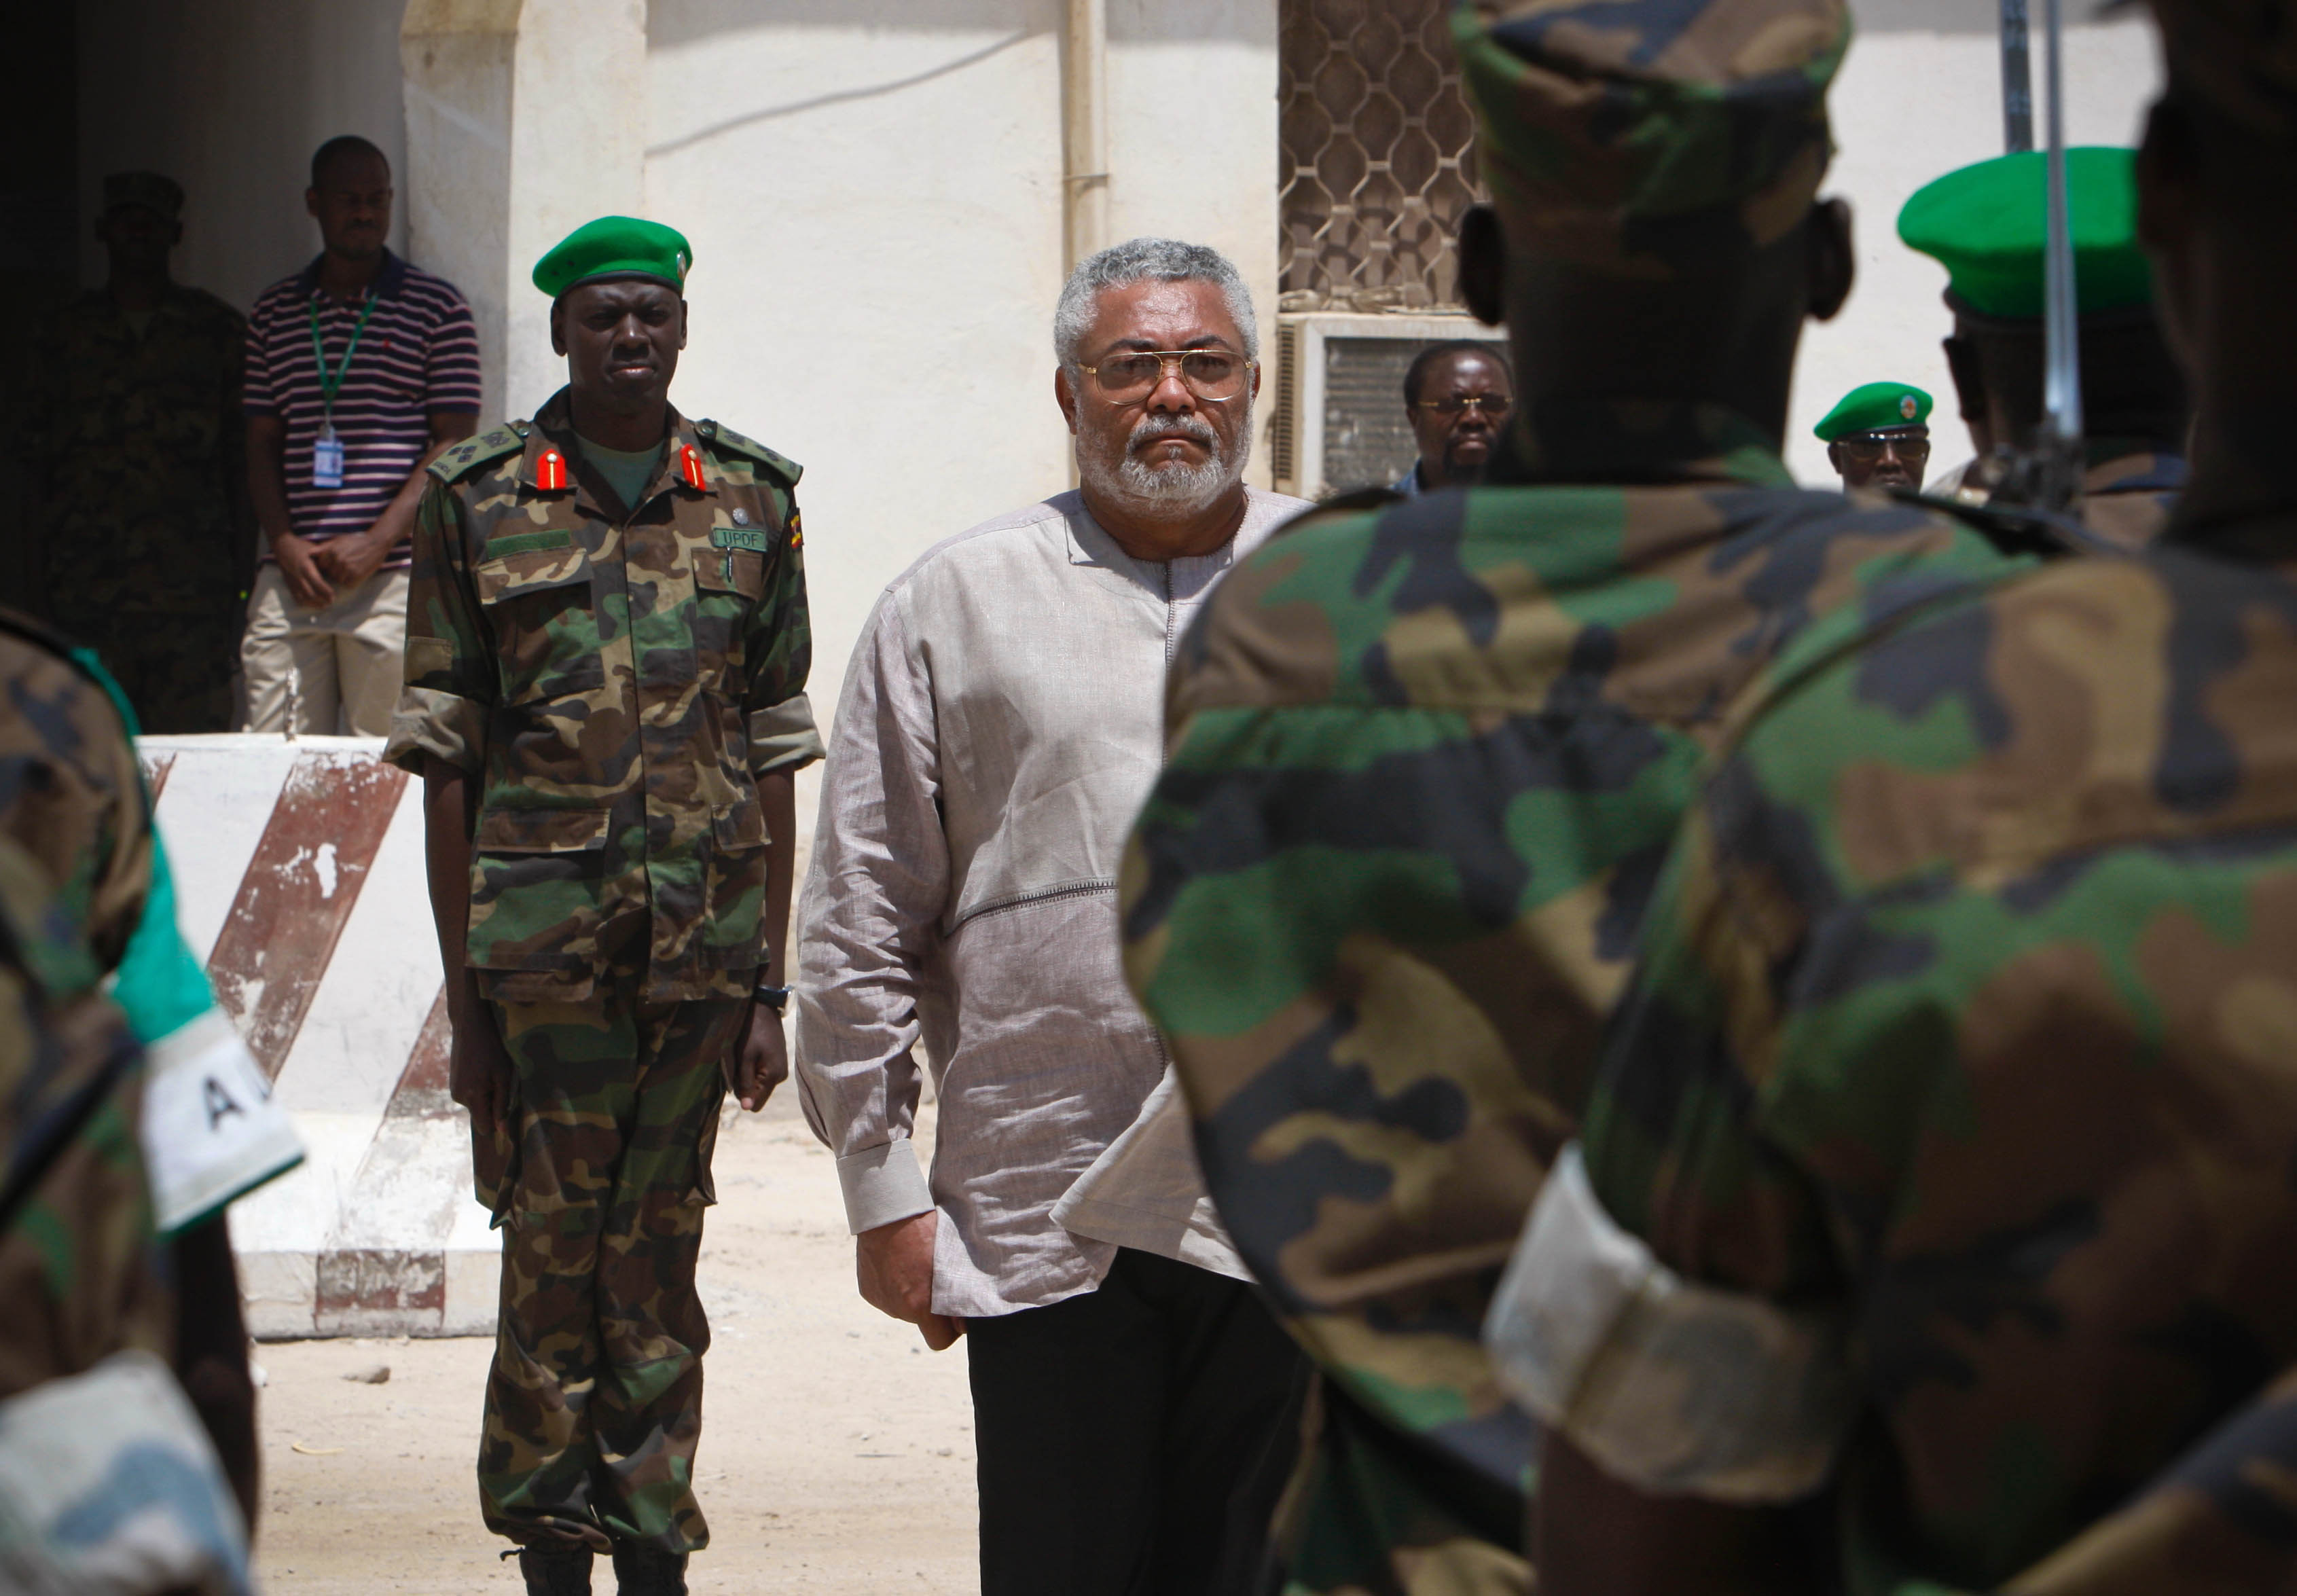 Jerry rawlings visits amisom 04 photo